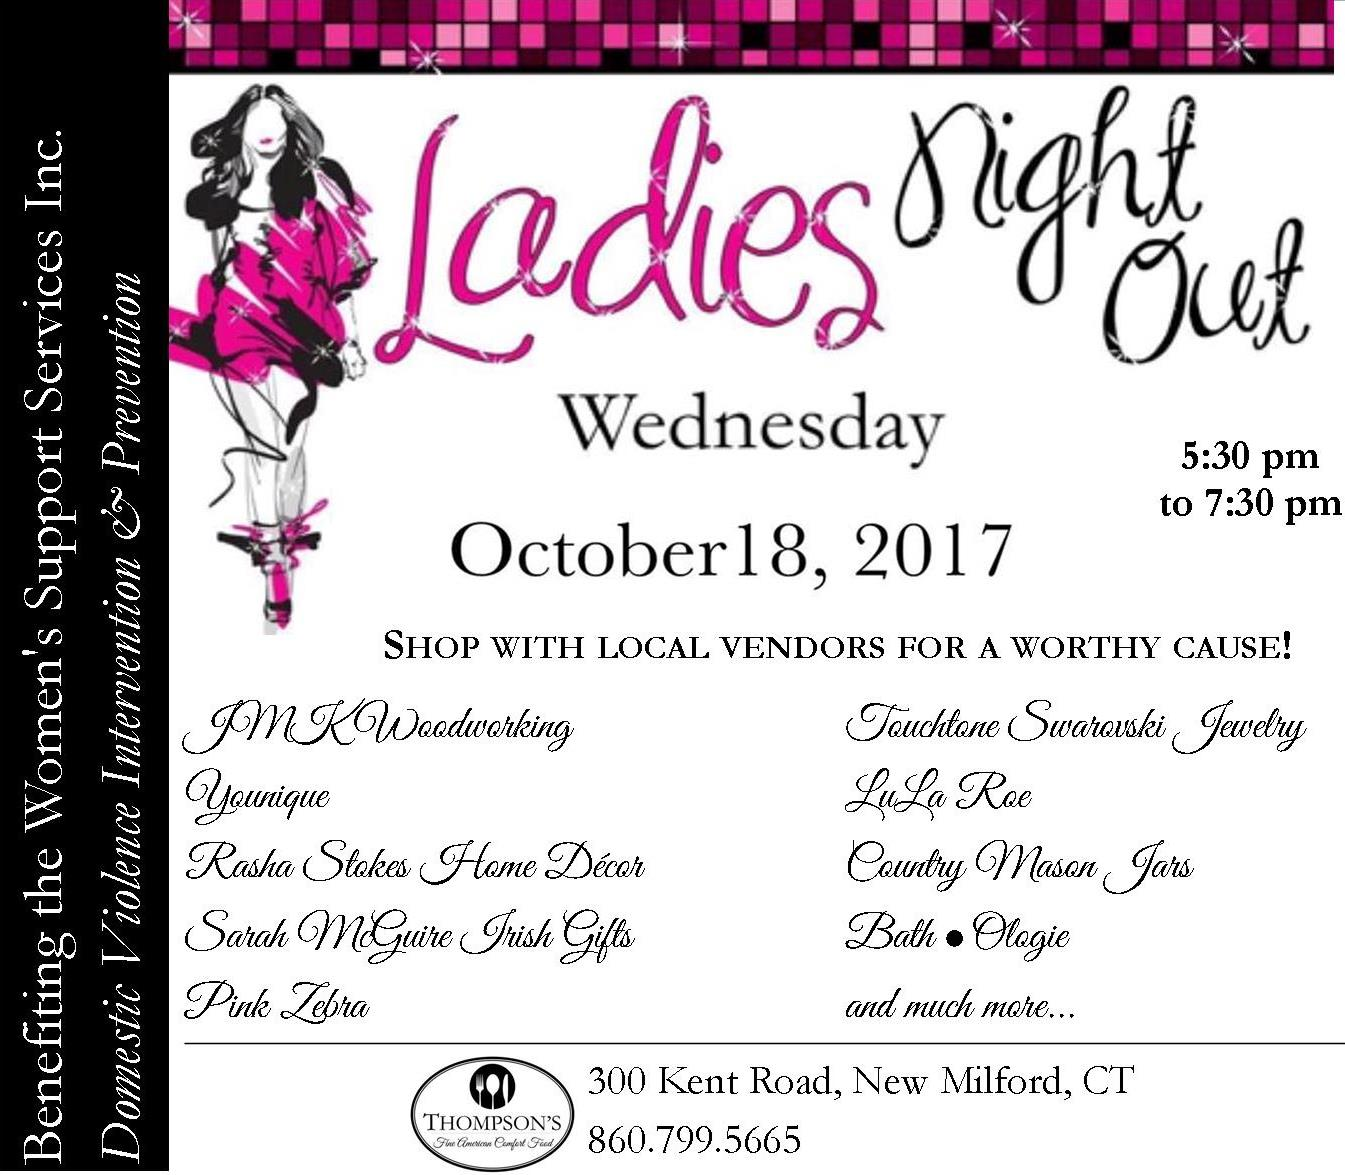 ladies night out at thompson s